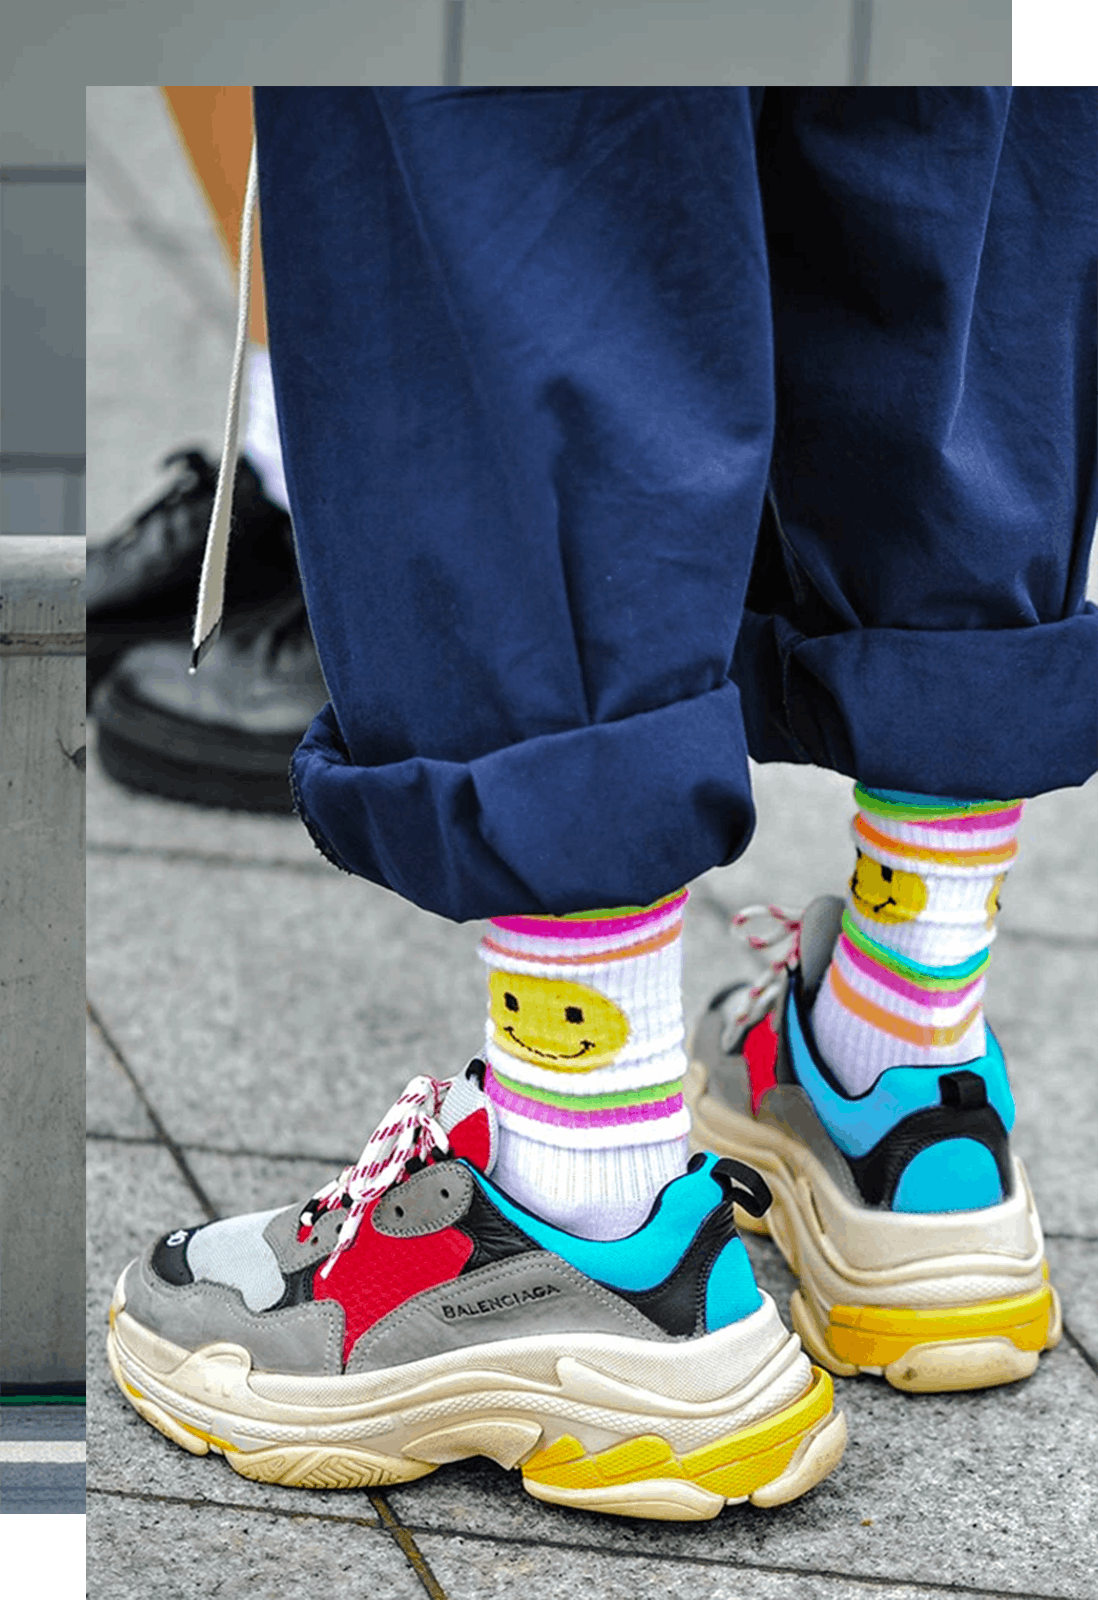 clunky-sneakers-1515581401557.png